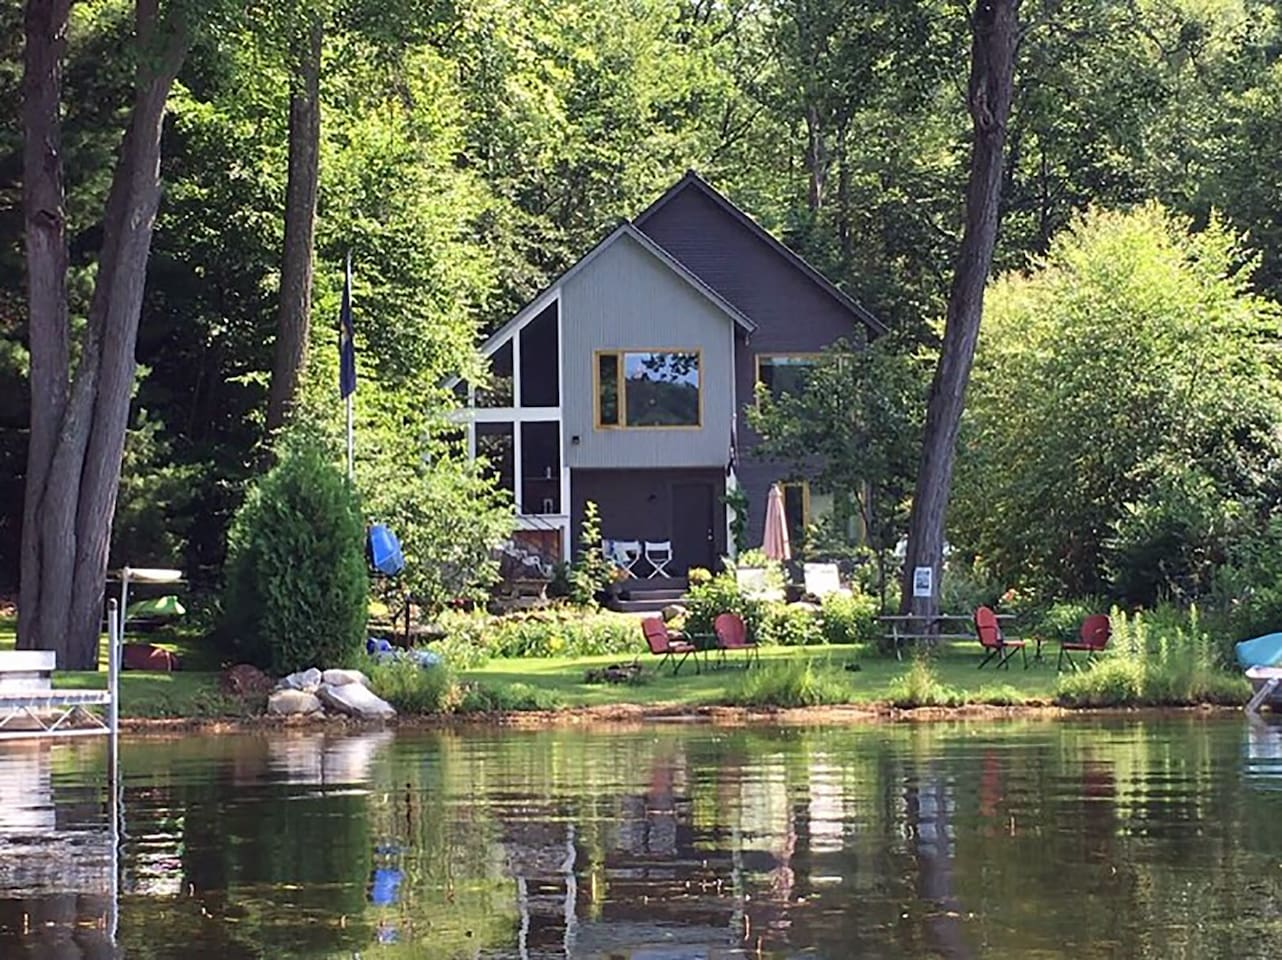 37 Rustic Court is lakefront home with stunning views.